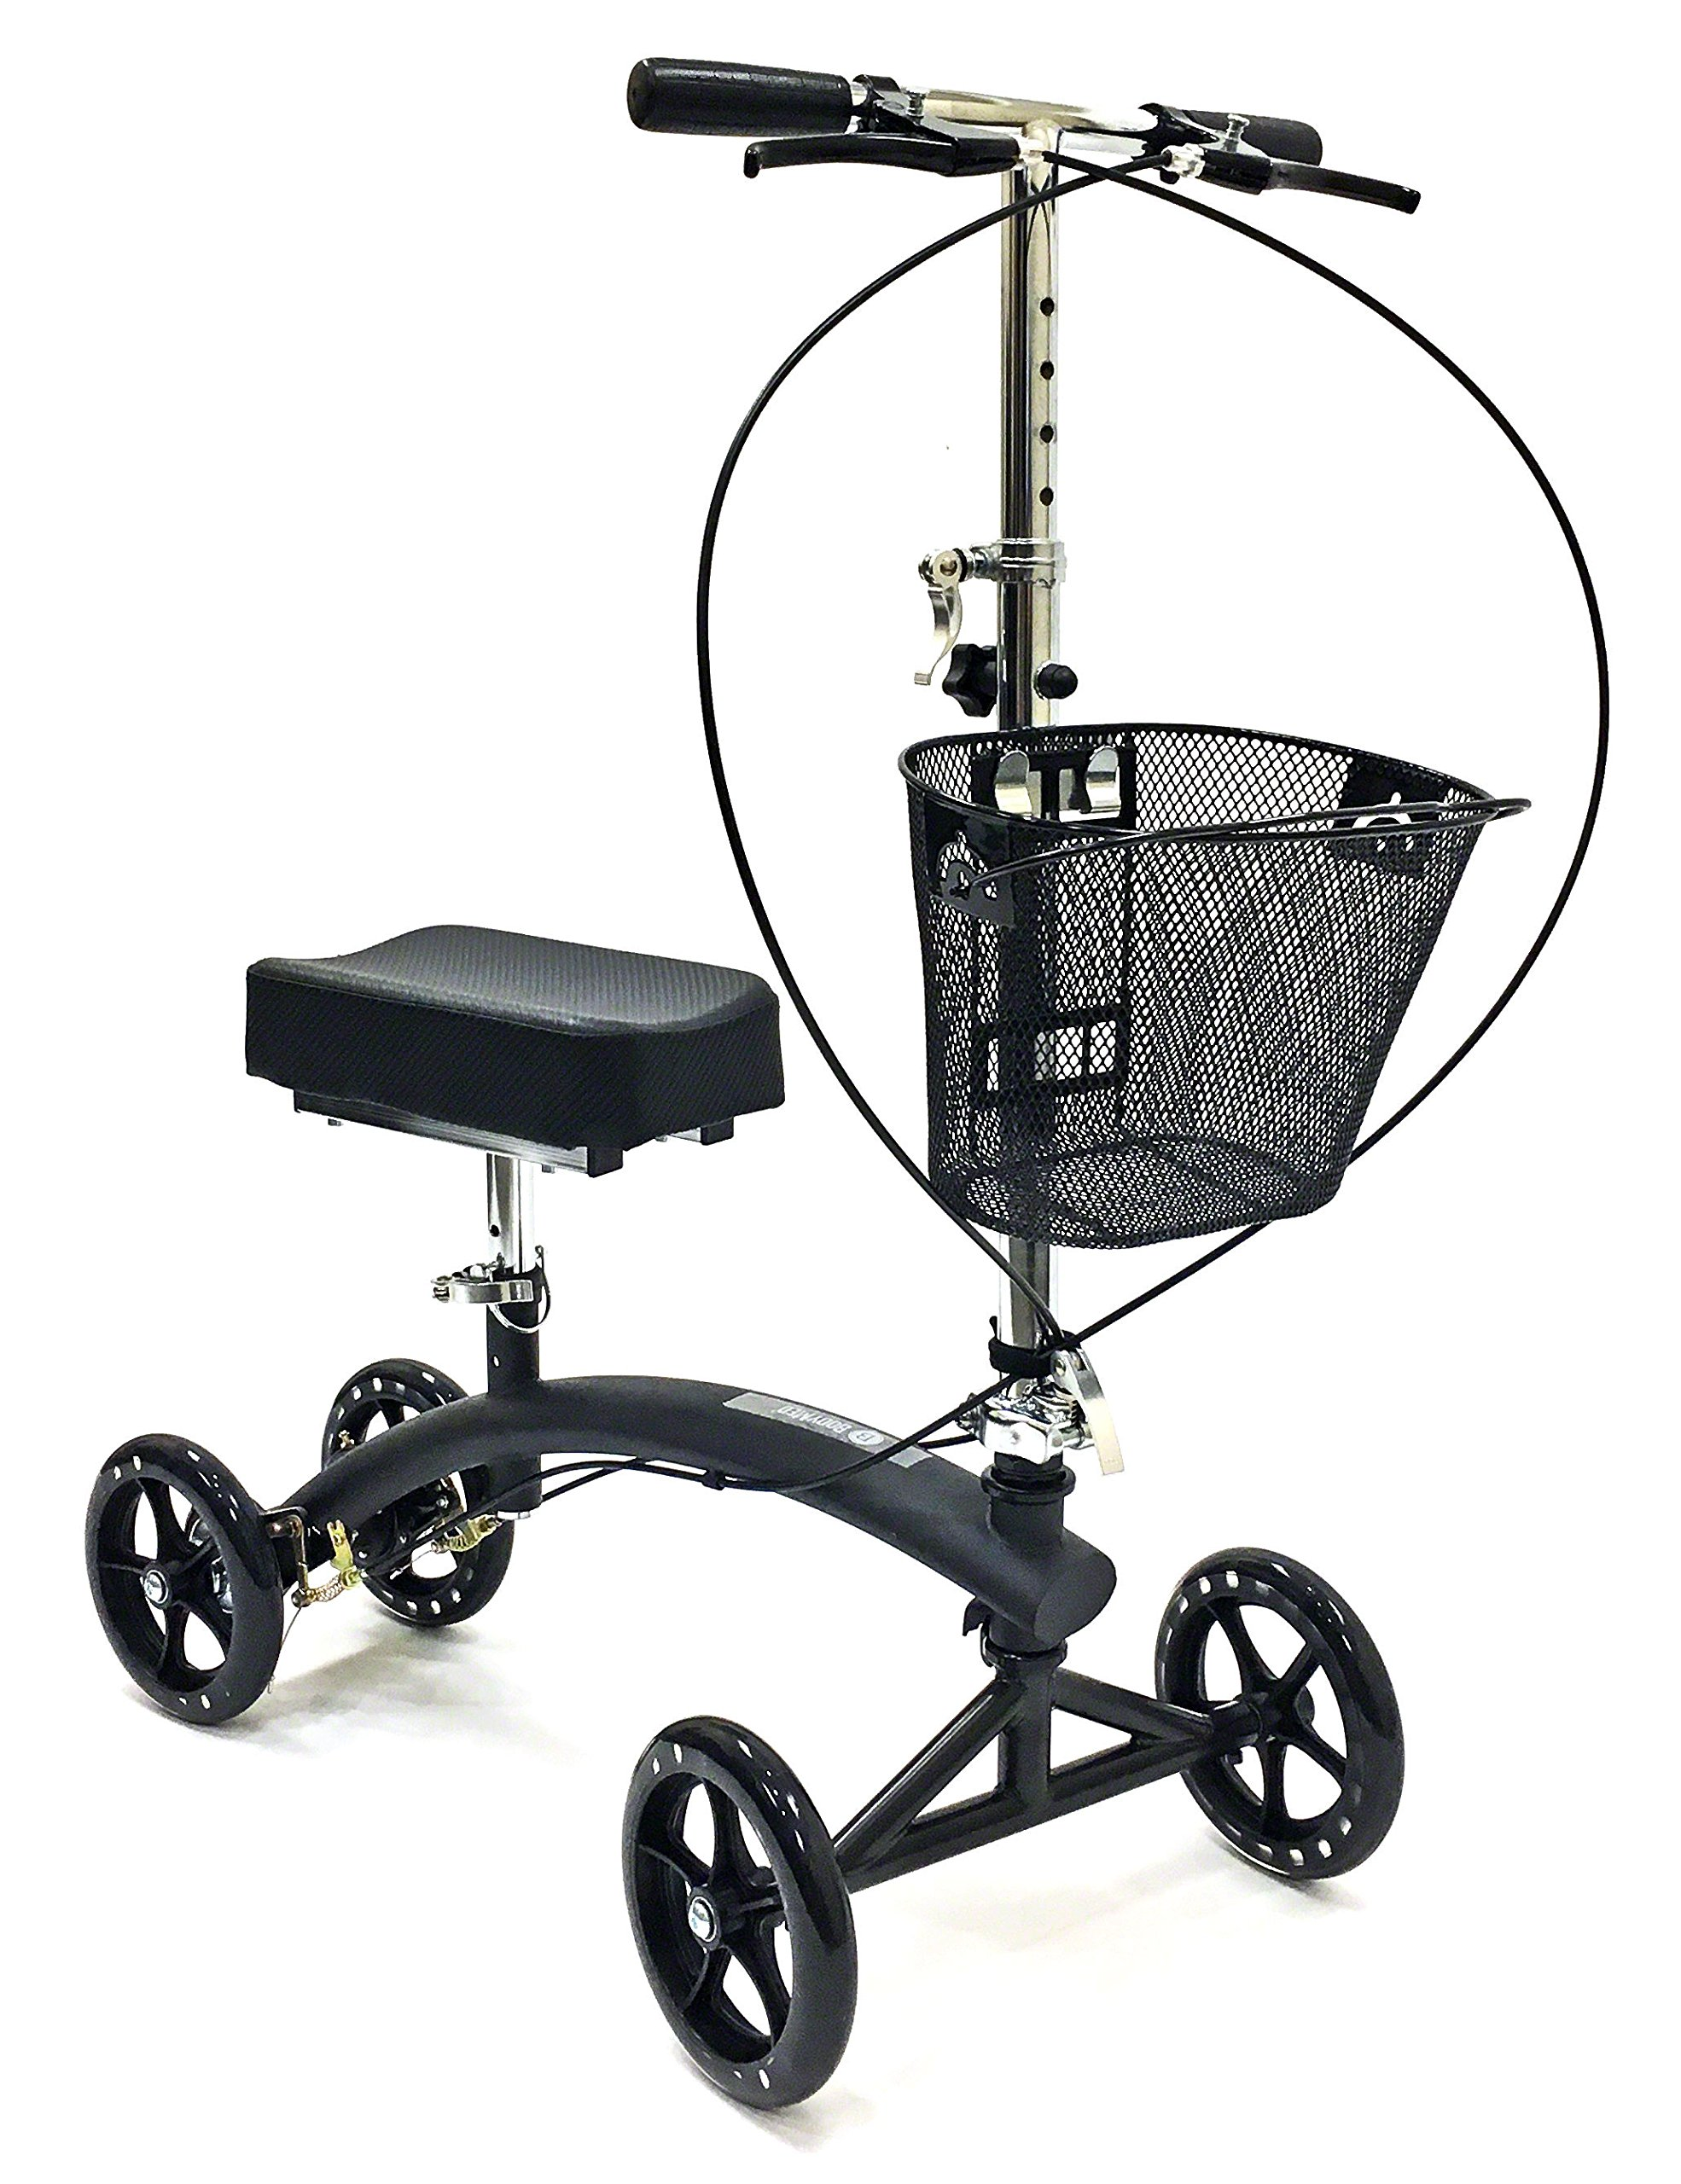 BodyMed Folding Knee Walker With Dual Braking System and Basket - - Great Alternative To Crutches - Broken Leg Scooter - Steerable Mobility Device For Foot Or Ankle Injury